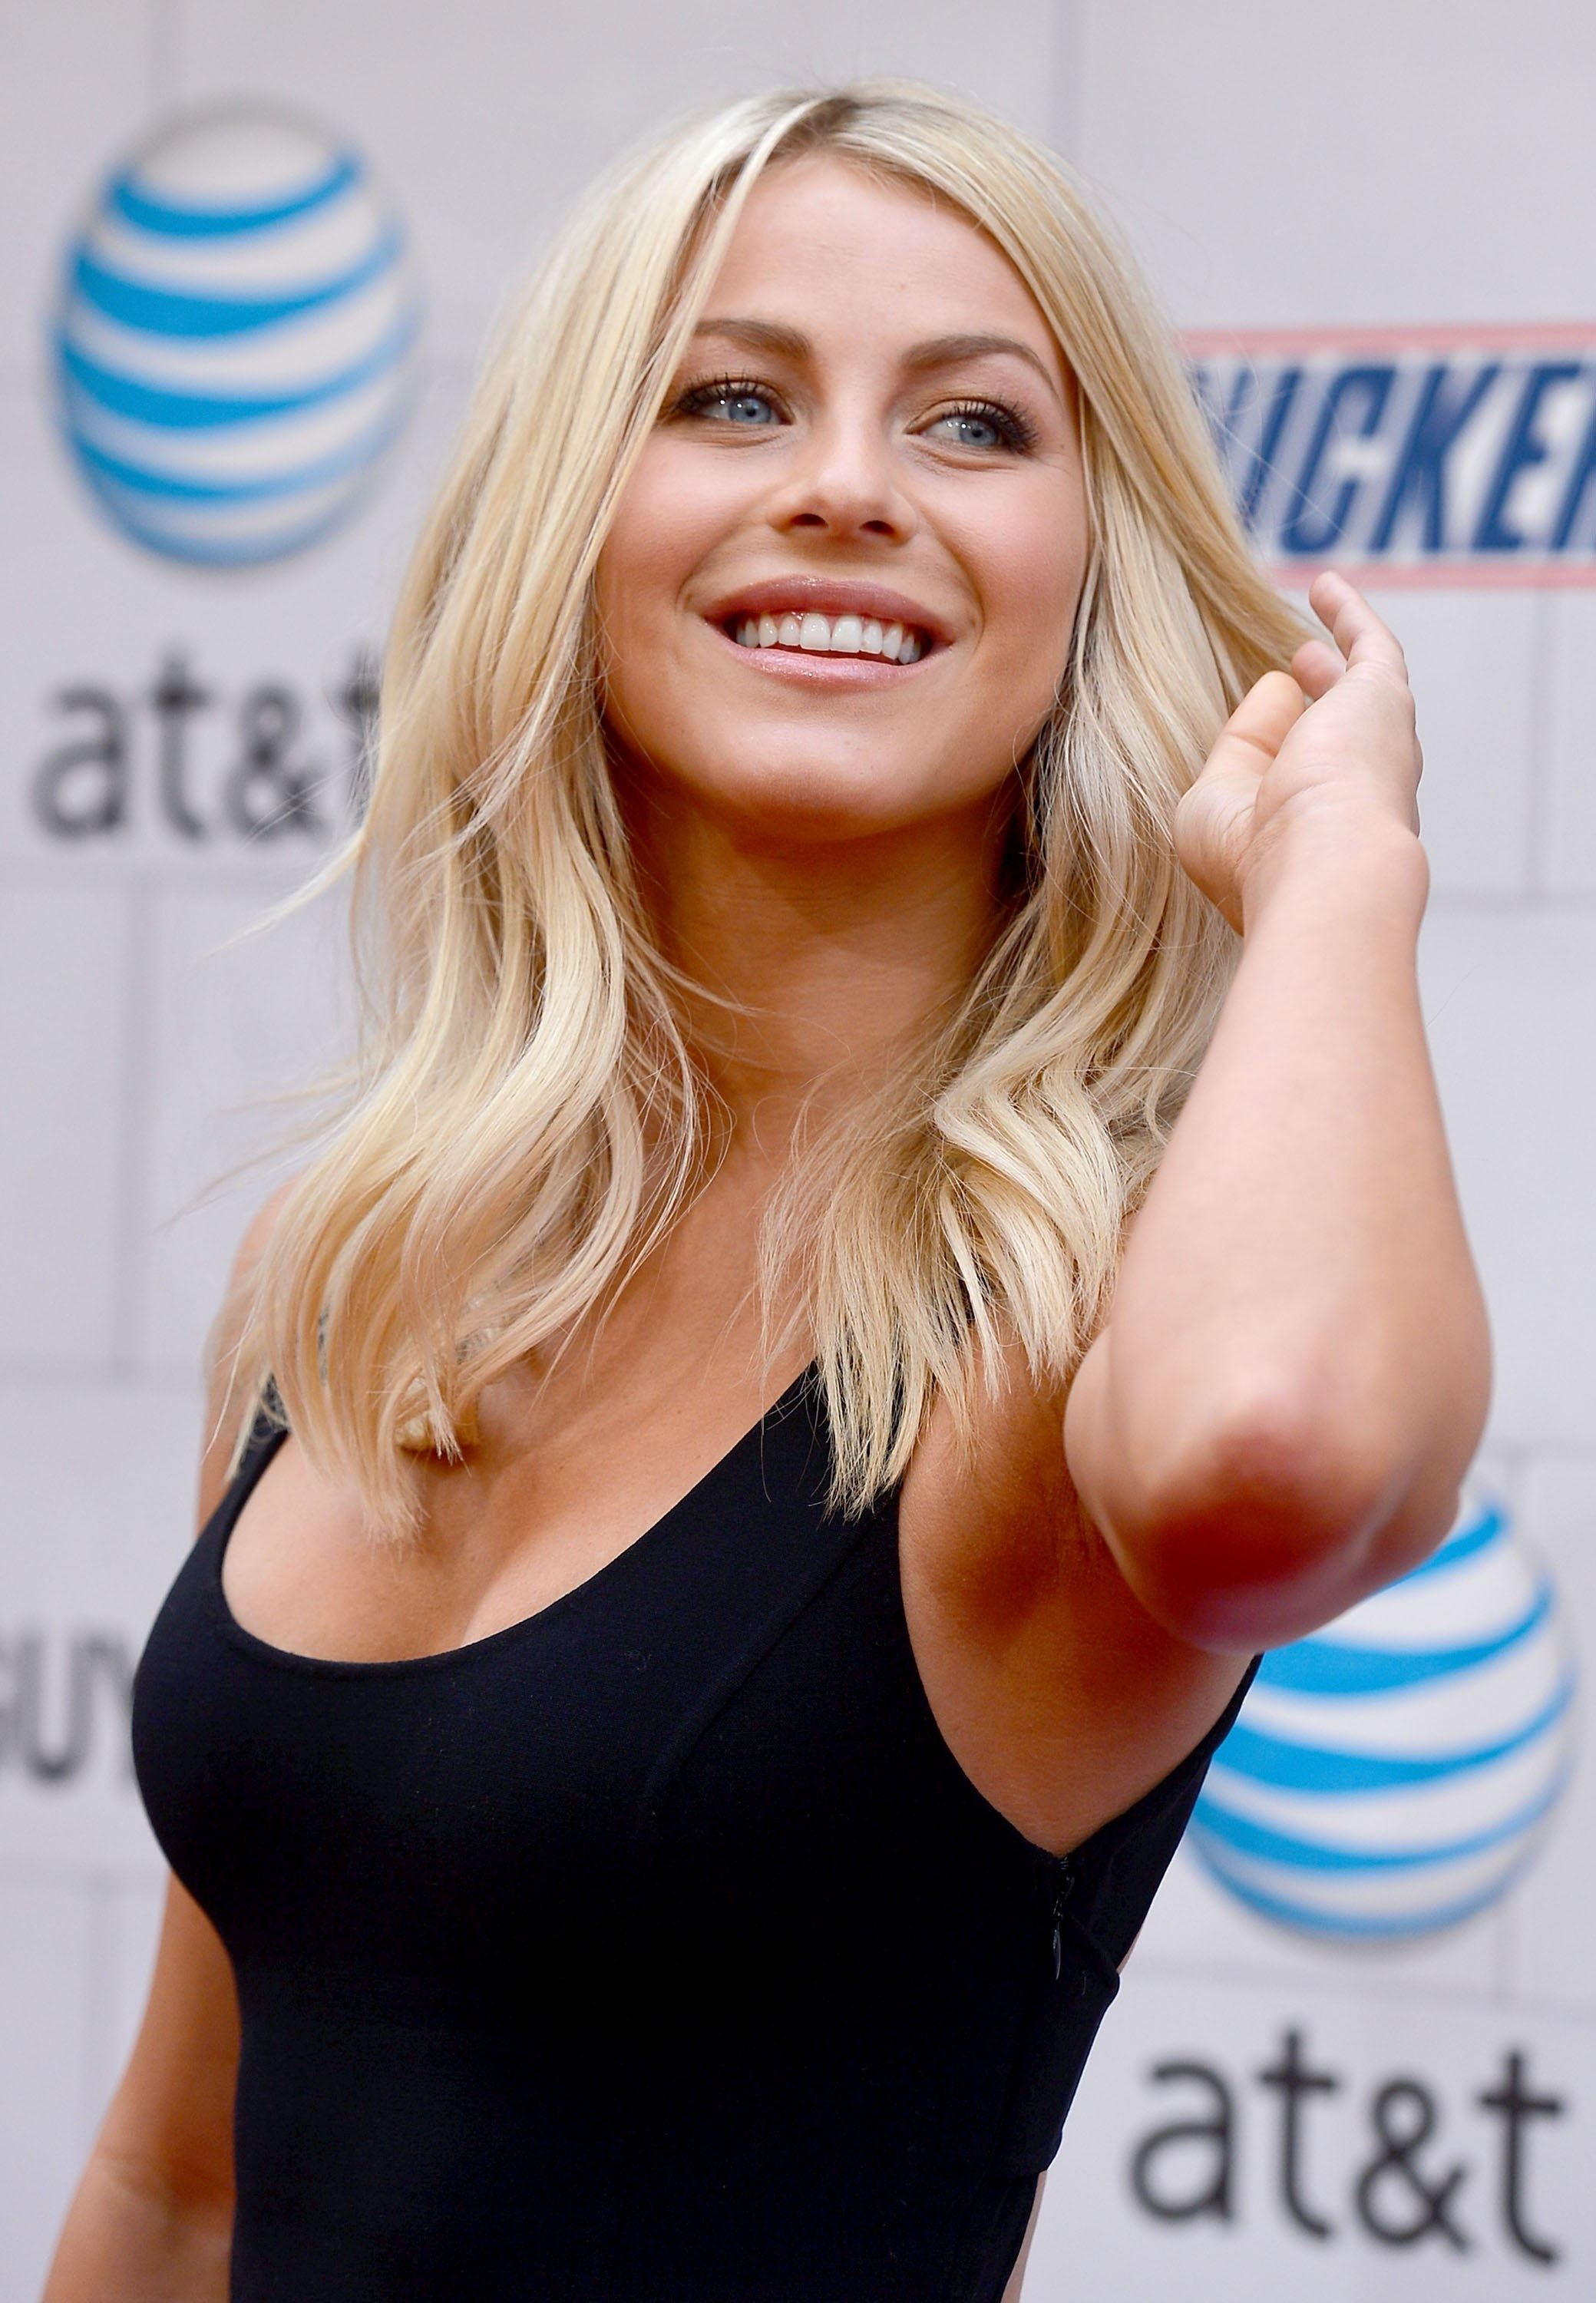 Julianne Hough Height Weight Age Bra Size Body Stats Affairs Boy Friends Details